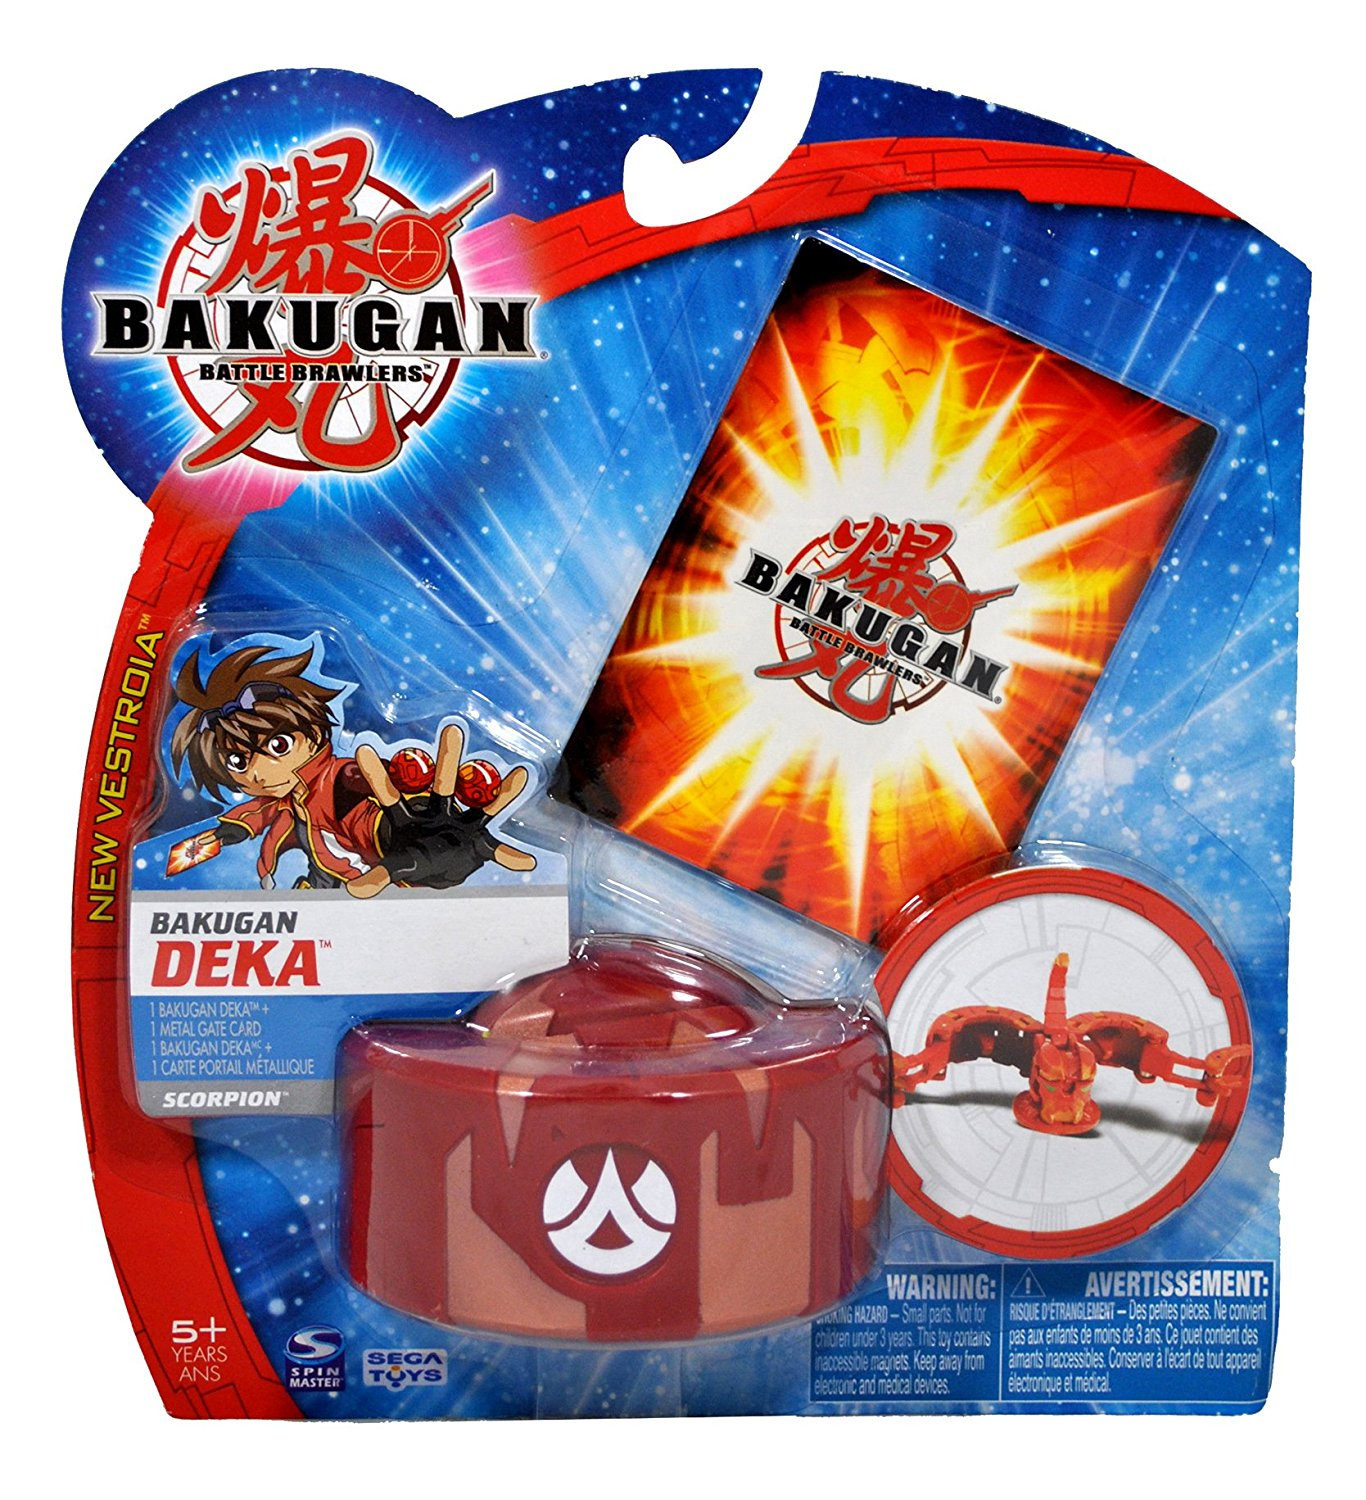 Spinmaster Bakugan Battle Brawlers New Vestroia DEKA Series Figure - Large Pyrus Red Scorpion Trap with 1 Metal Gate Card